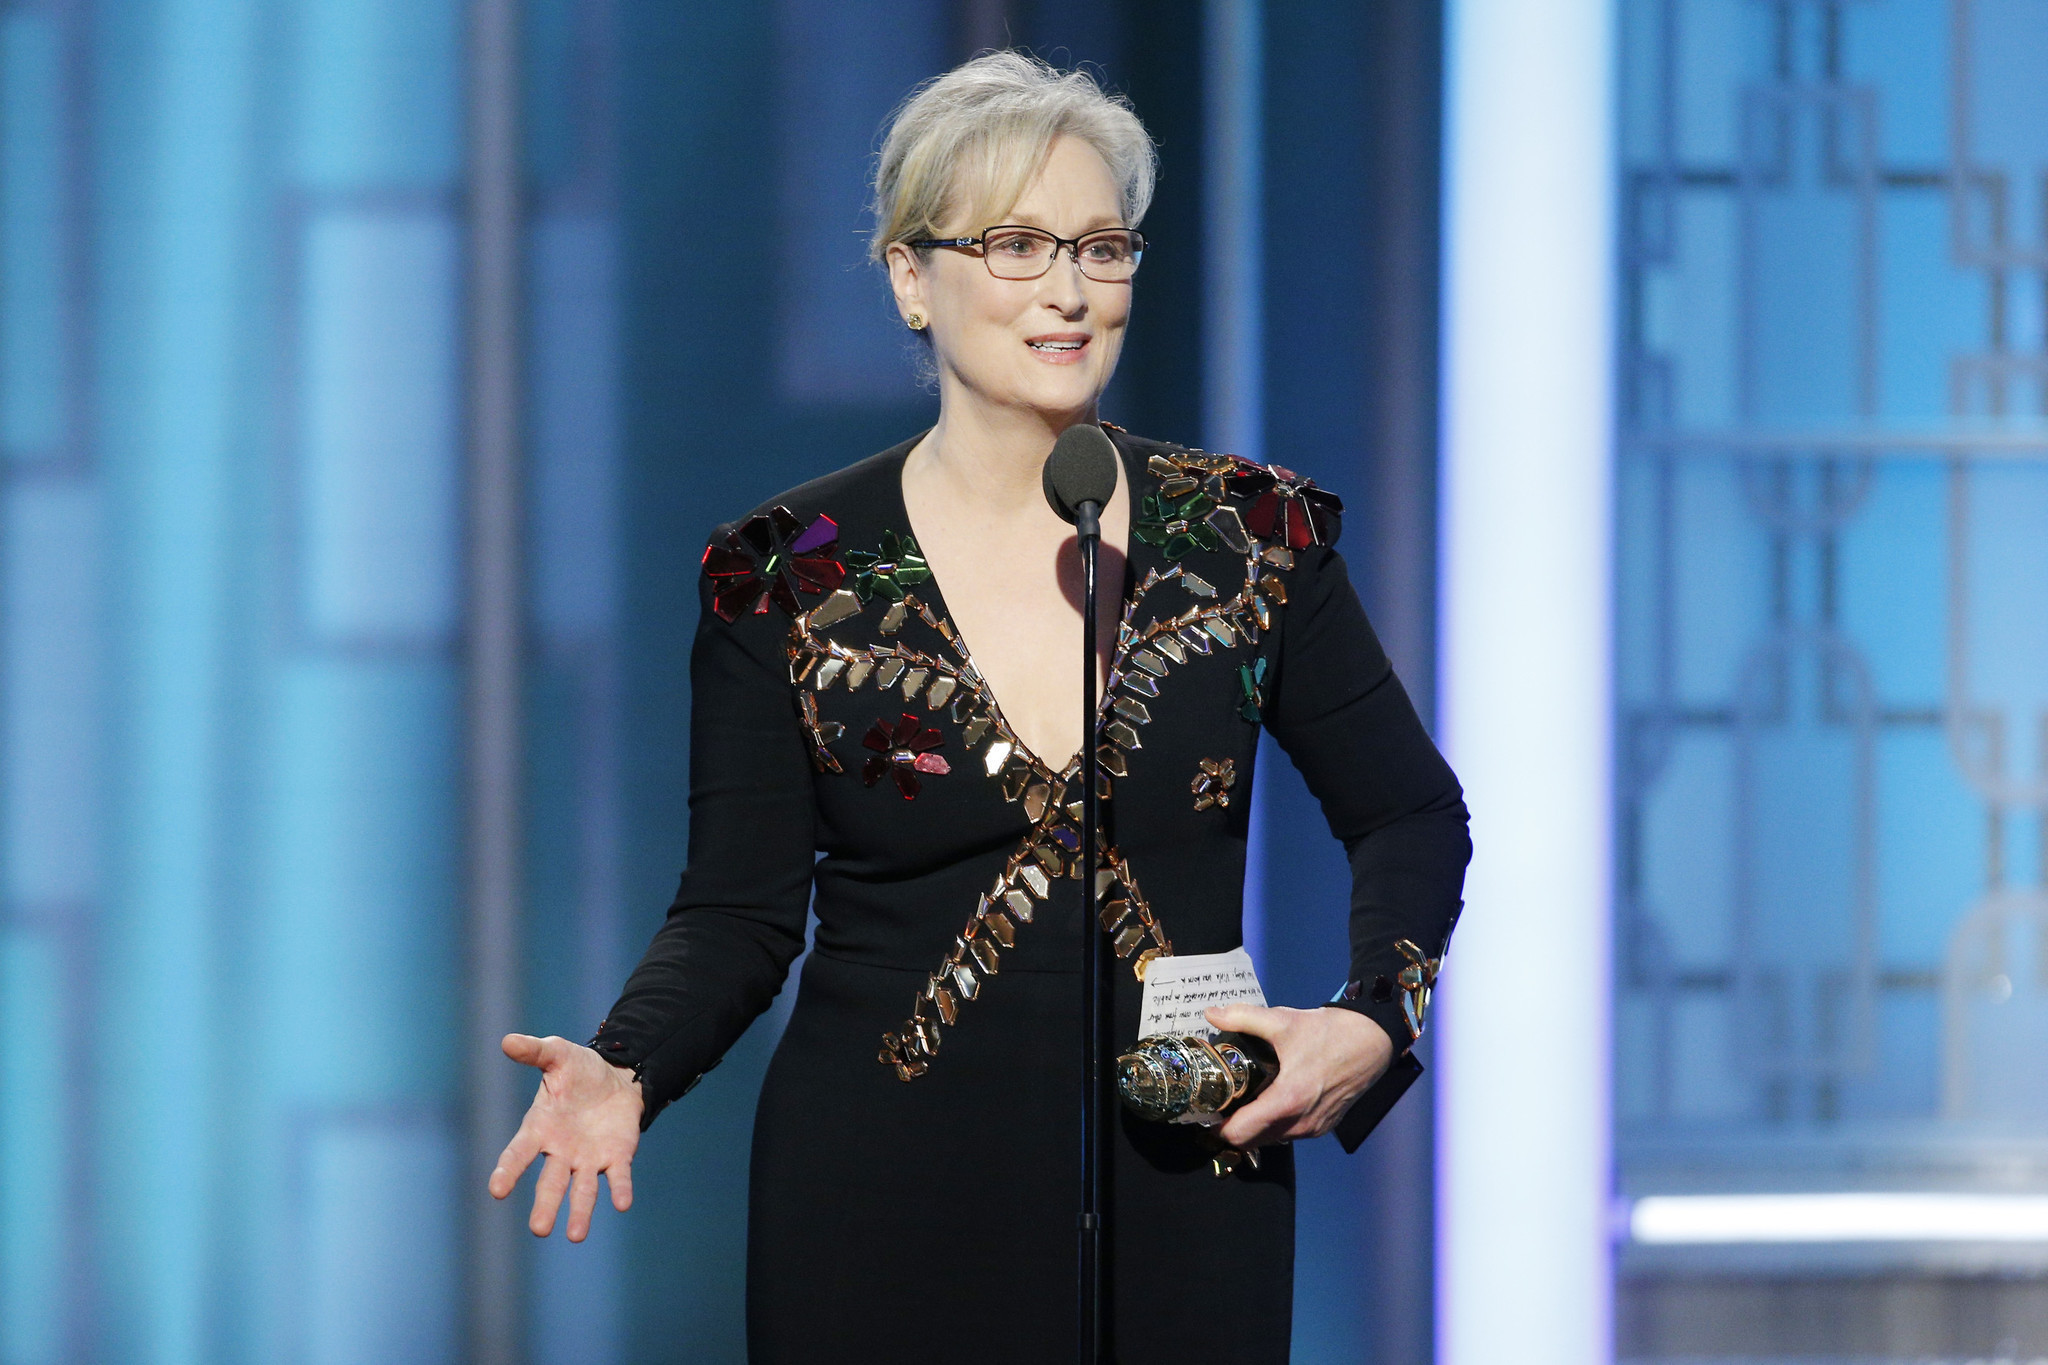 Meryl Streep 'overrated'? Donald Trump fires the latest salvo in the culture wars